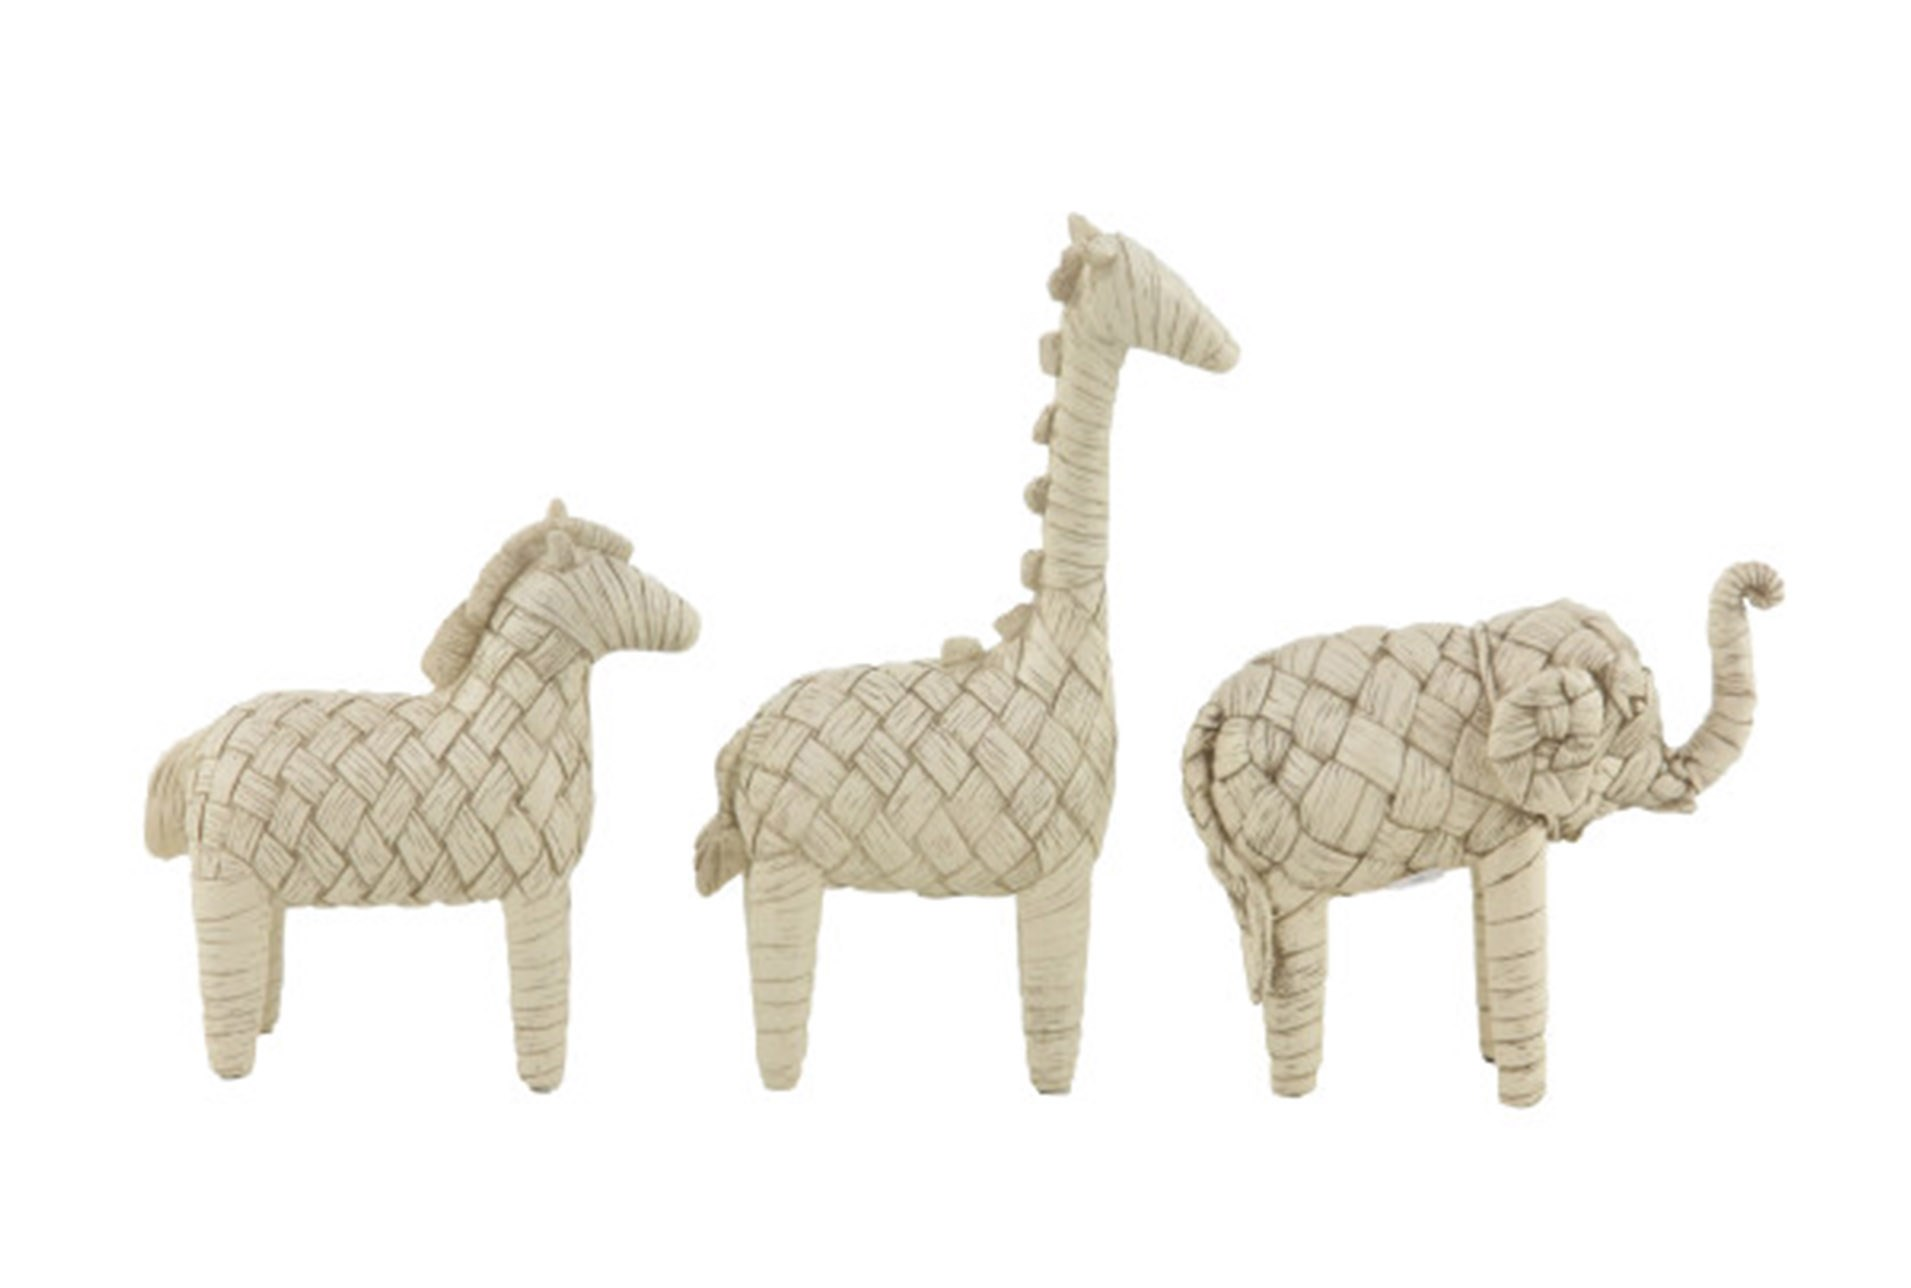 Youth Set Of 3 Woven Animal Sculptures Living Spaces